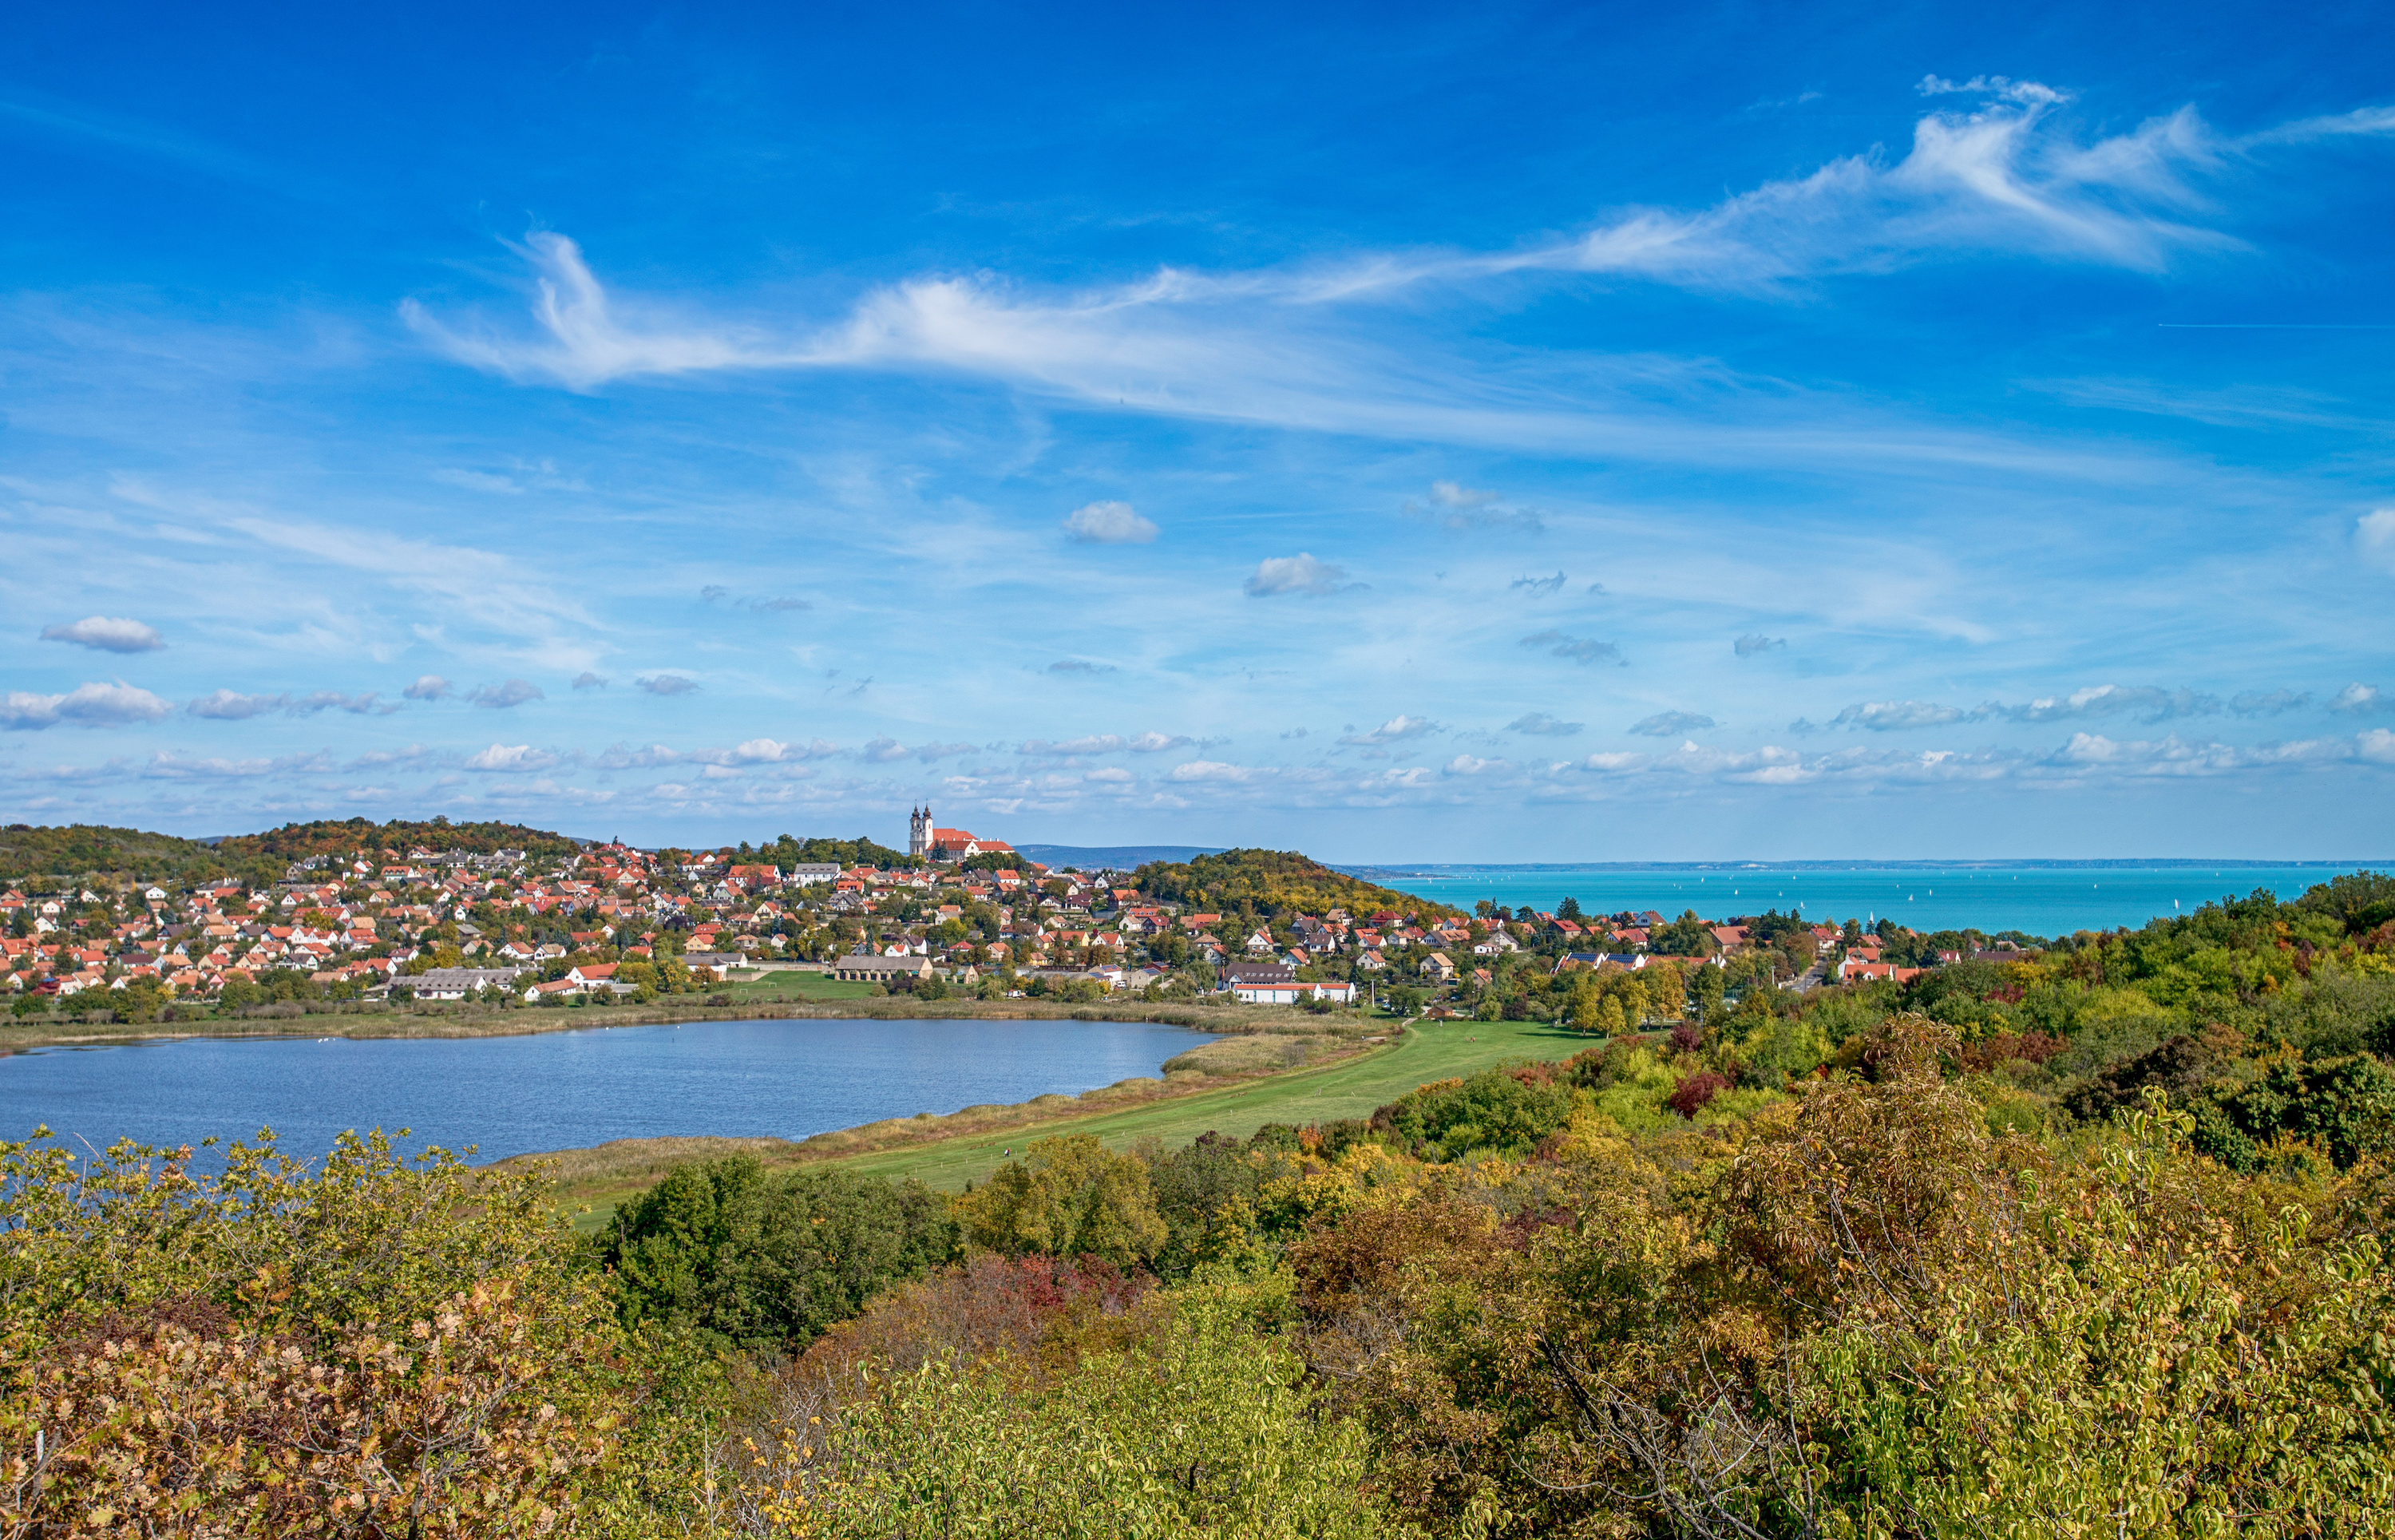 The Eerie Secrets And Romantic Legends Of The Balaton